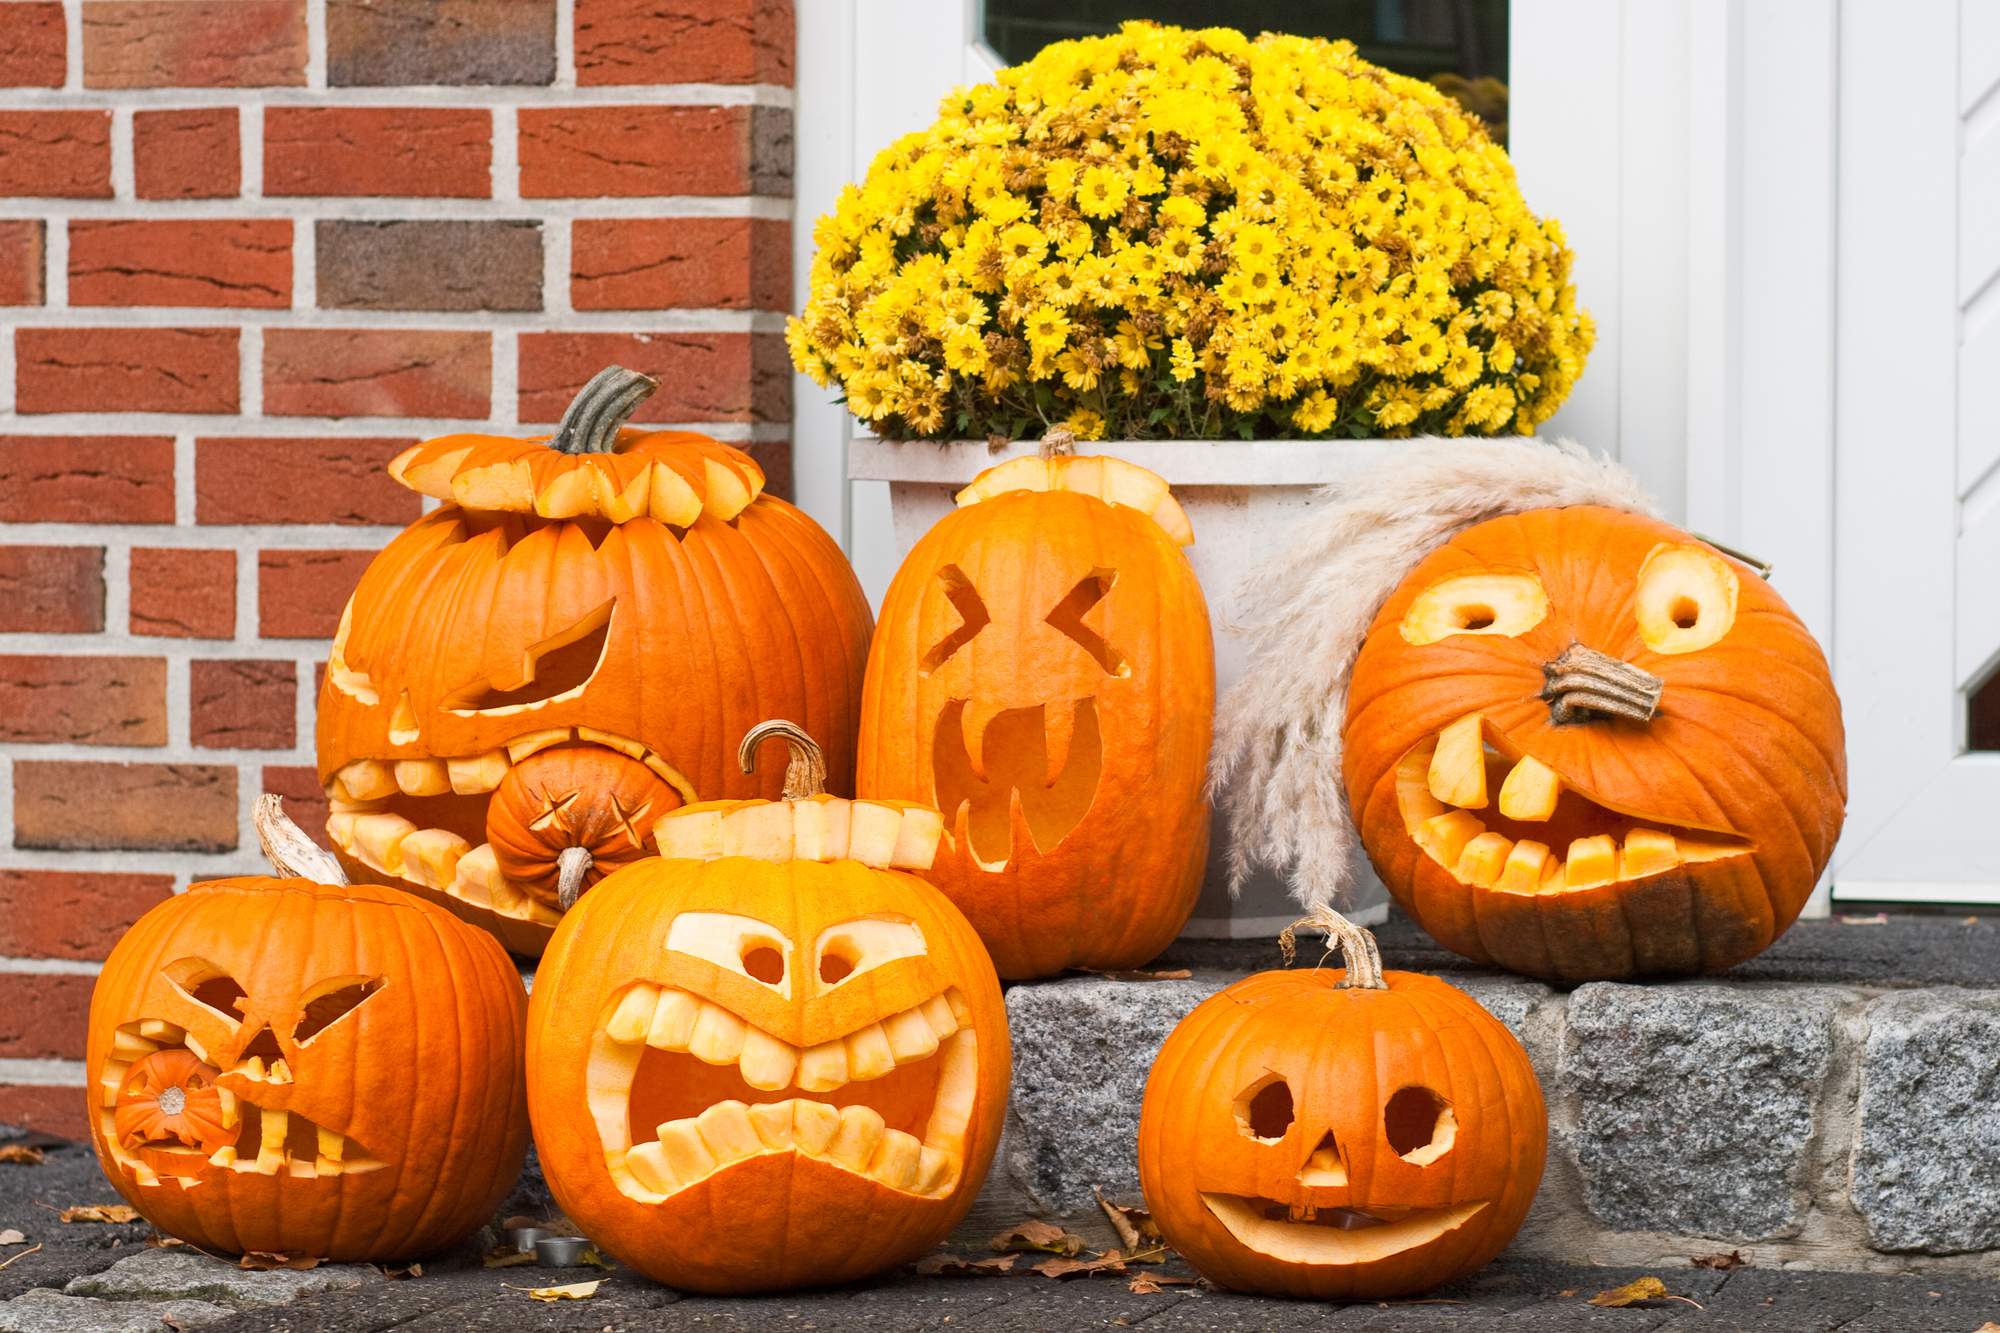 4 Home & Garden Essentials for Your Halloween Party